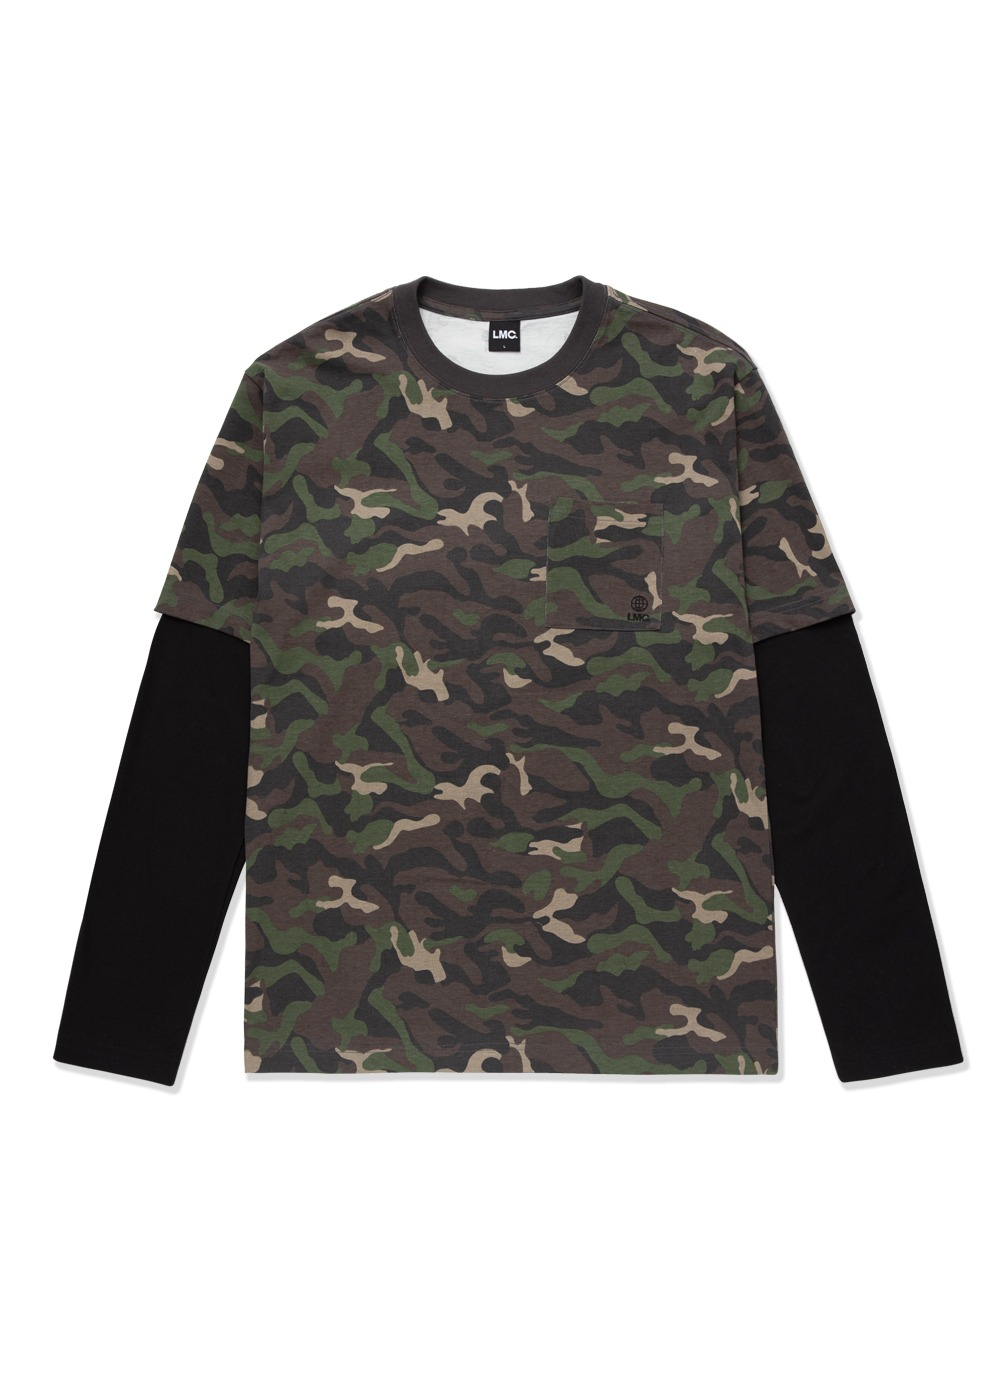 LMC WORKROOM LAYERED LONG SLV TEE camo